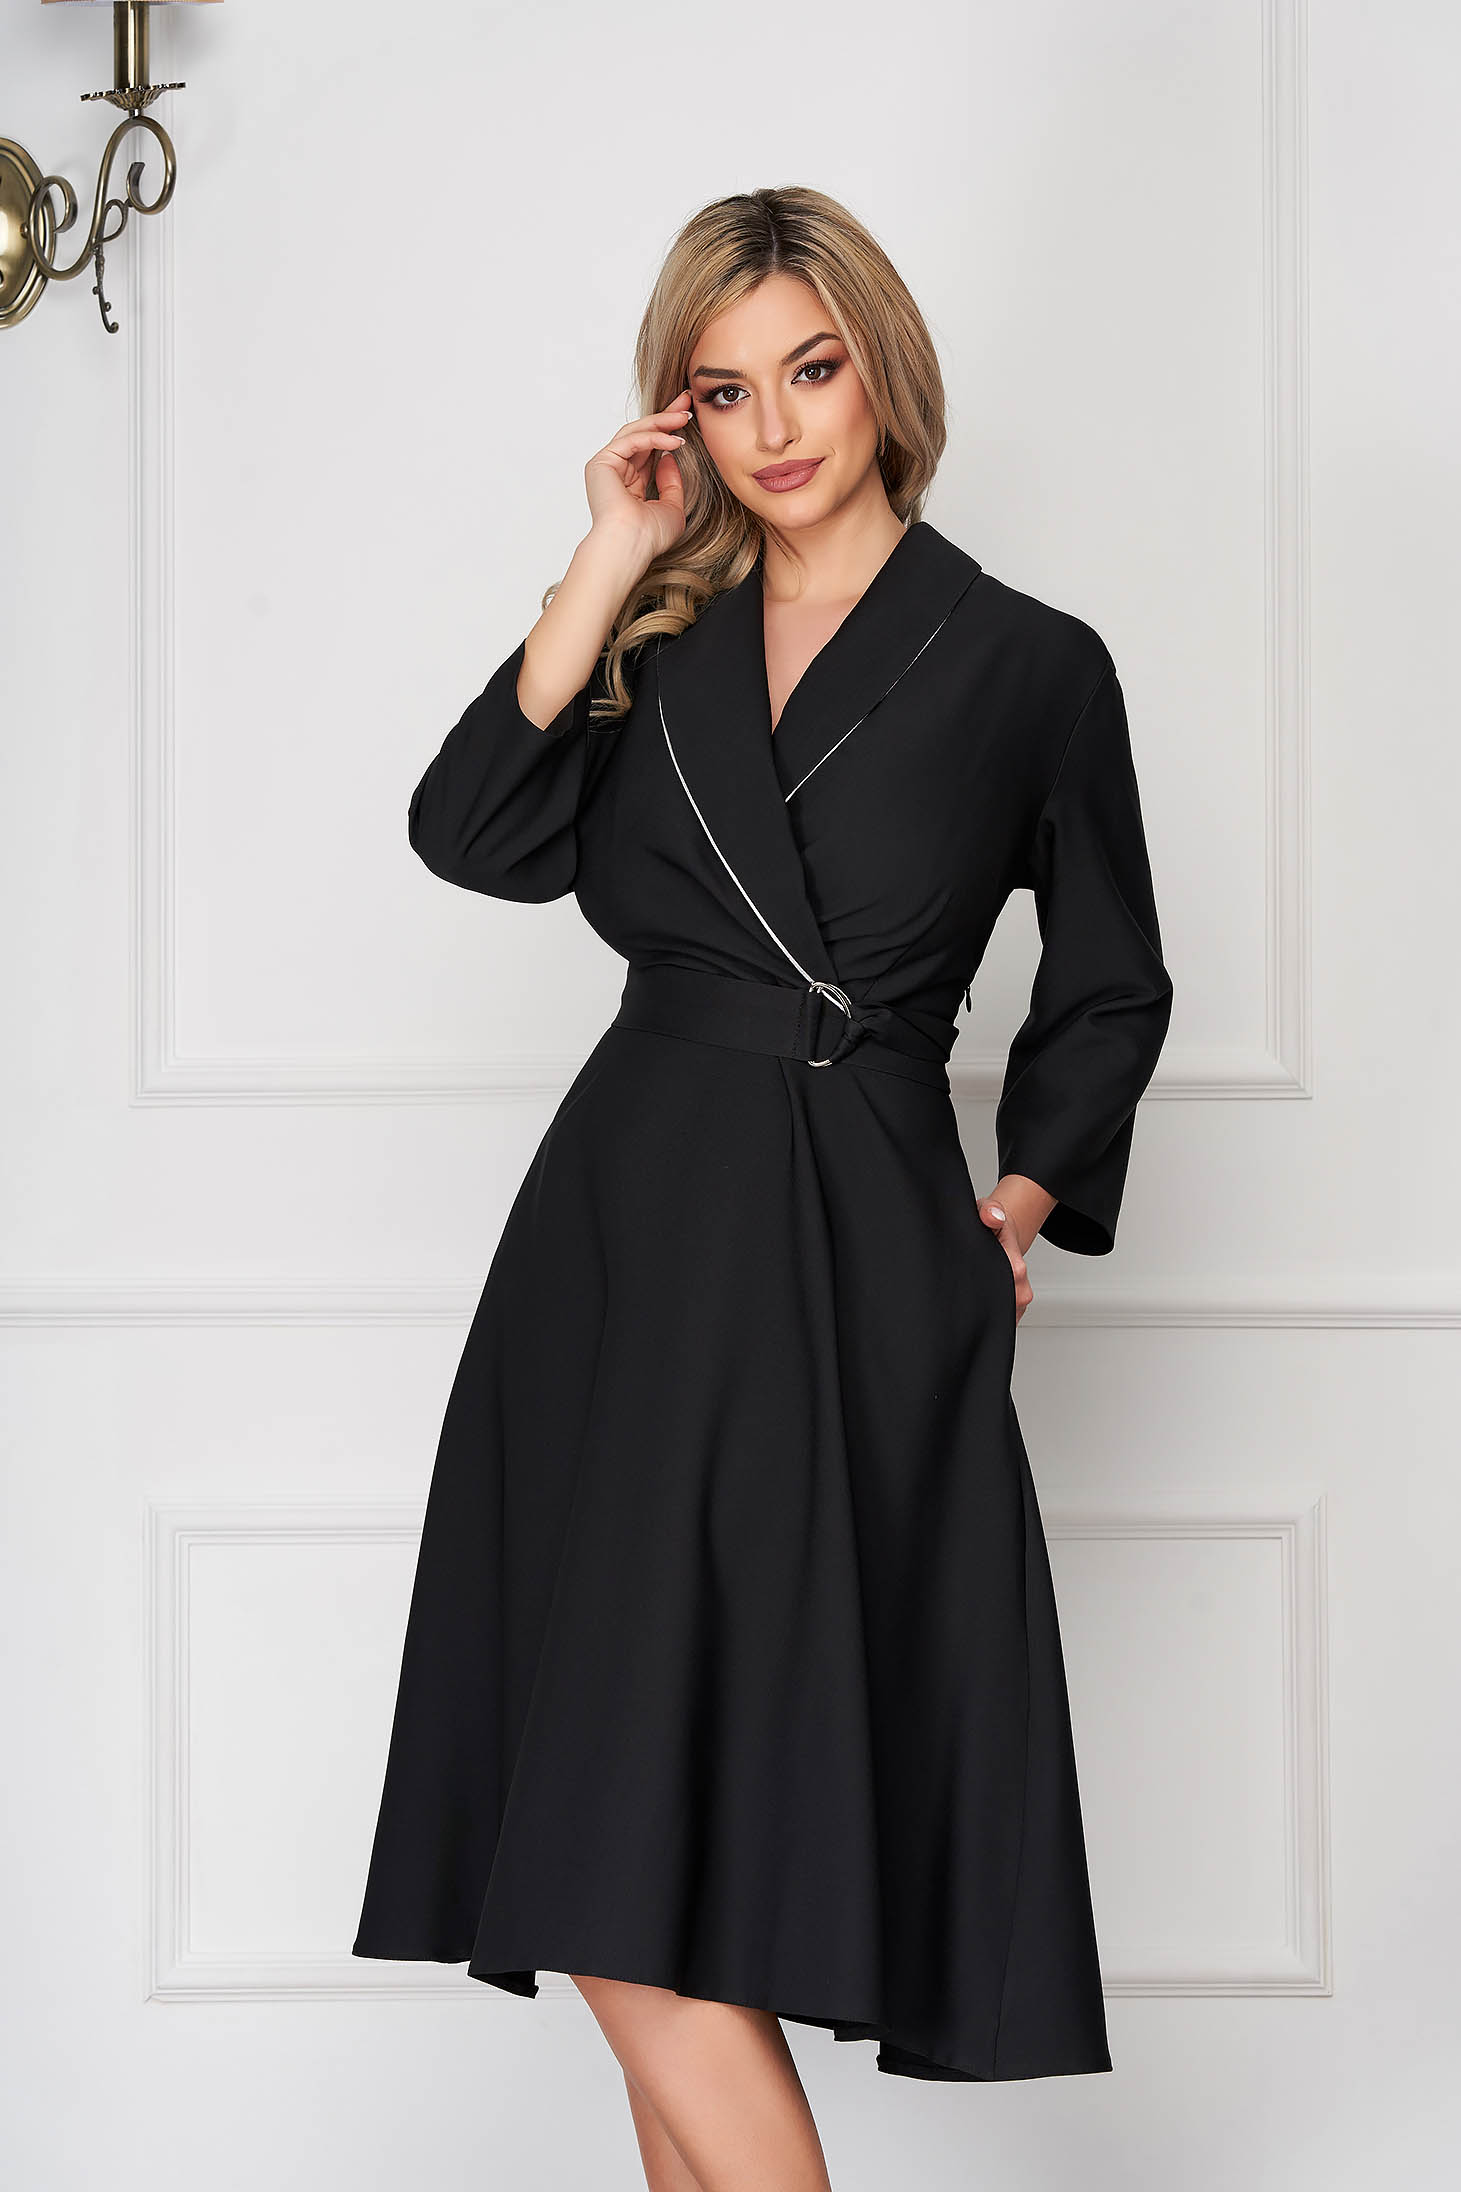 Black office cloche dress with pockets long sleeved